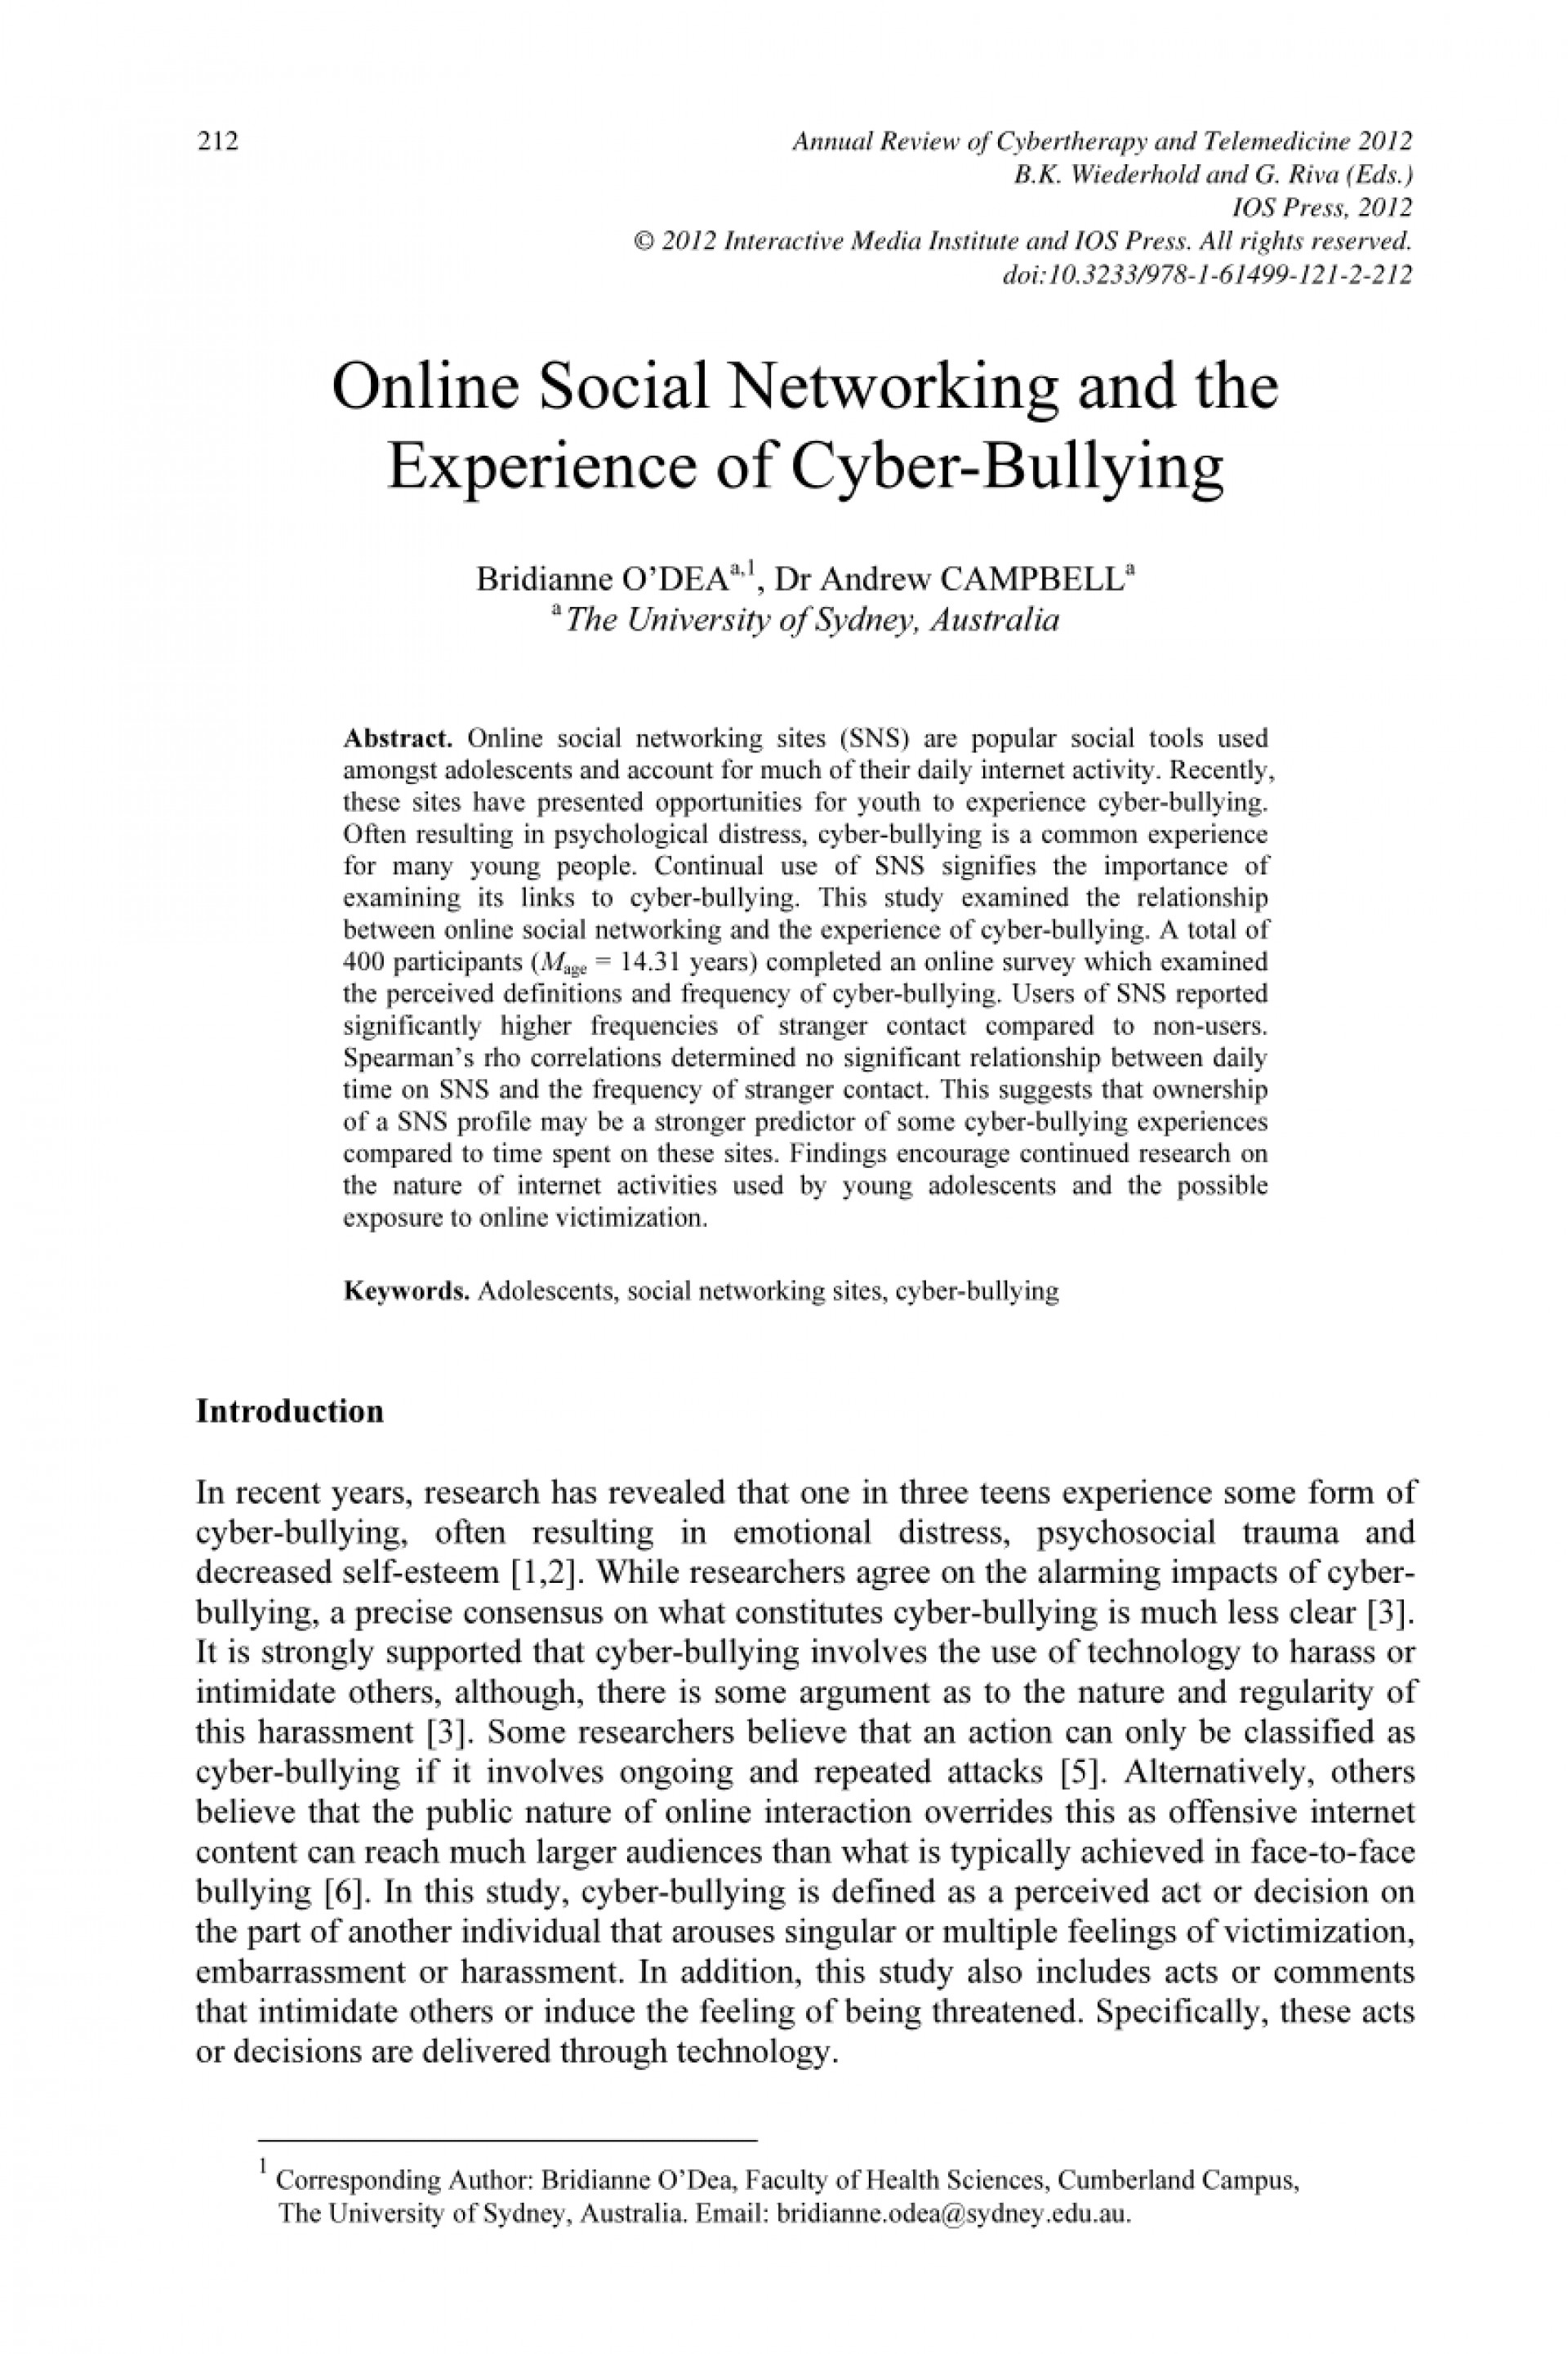 003 Largepreview Research Paper Introduction For Shocking Cyberbullying 1920